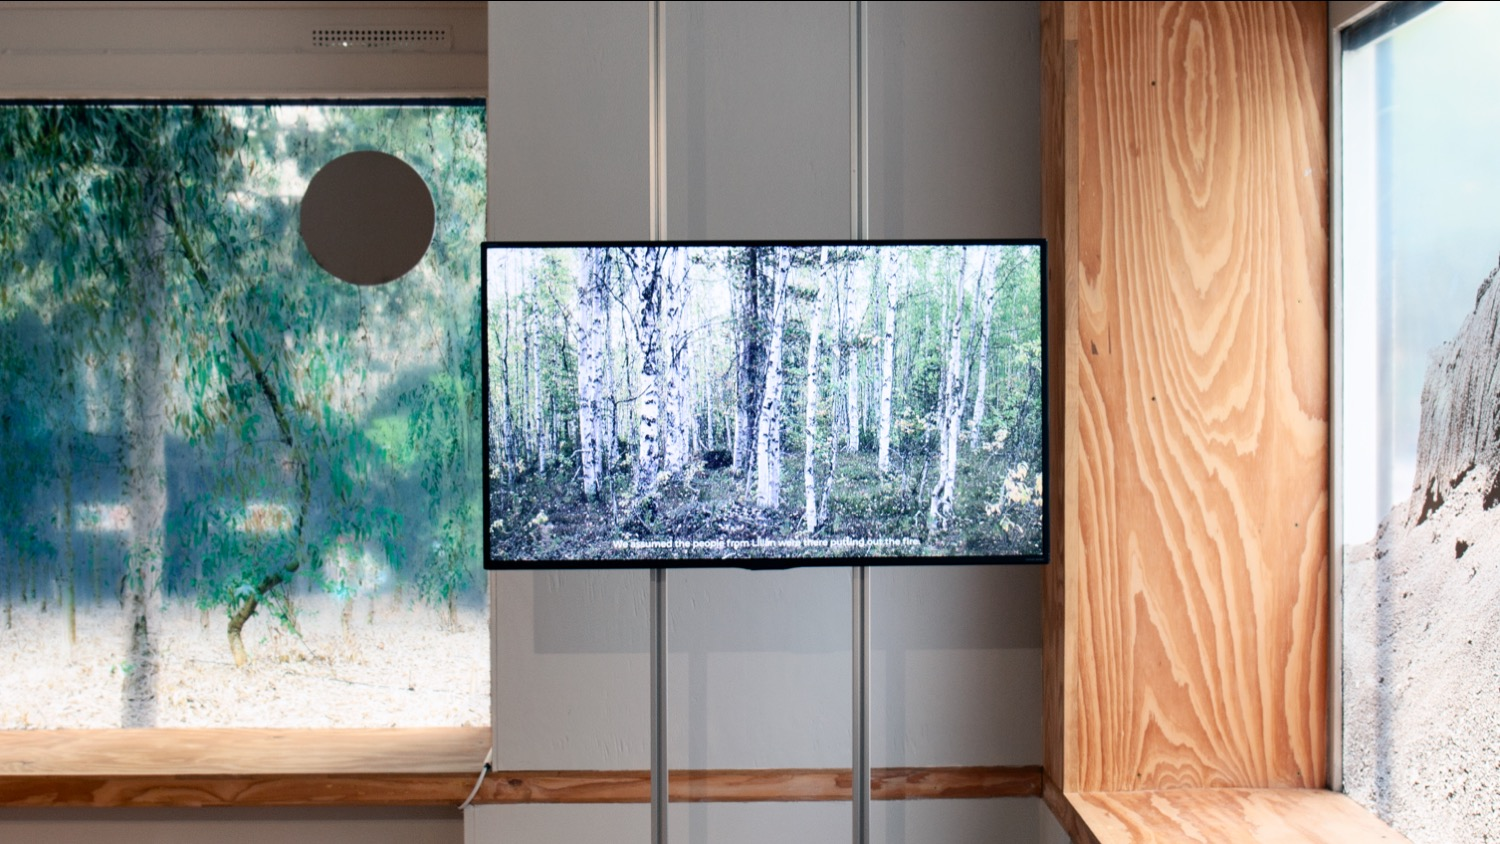 Forest&Fires. In collaboration with Liz-Marie Nilsen, 2019. 05:23 min Interview with Palle Erixon Turberget, Jåhkåmåhkke, Swedish Sábme, September 2018